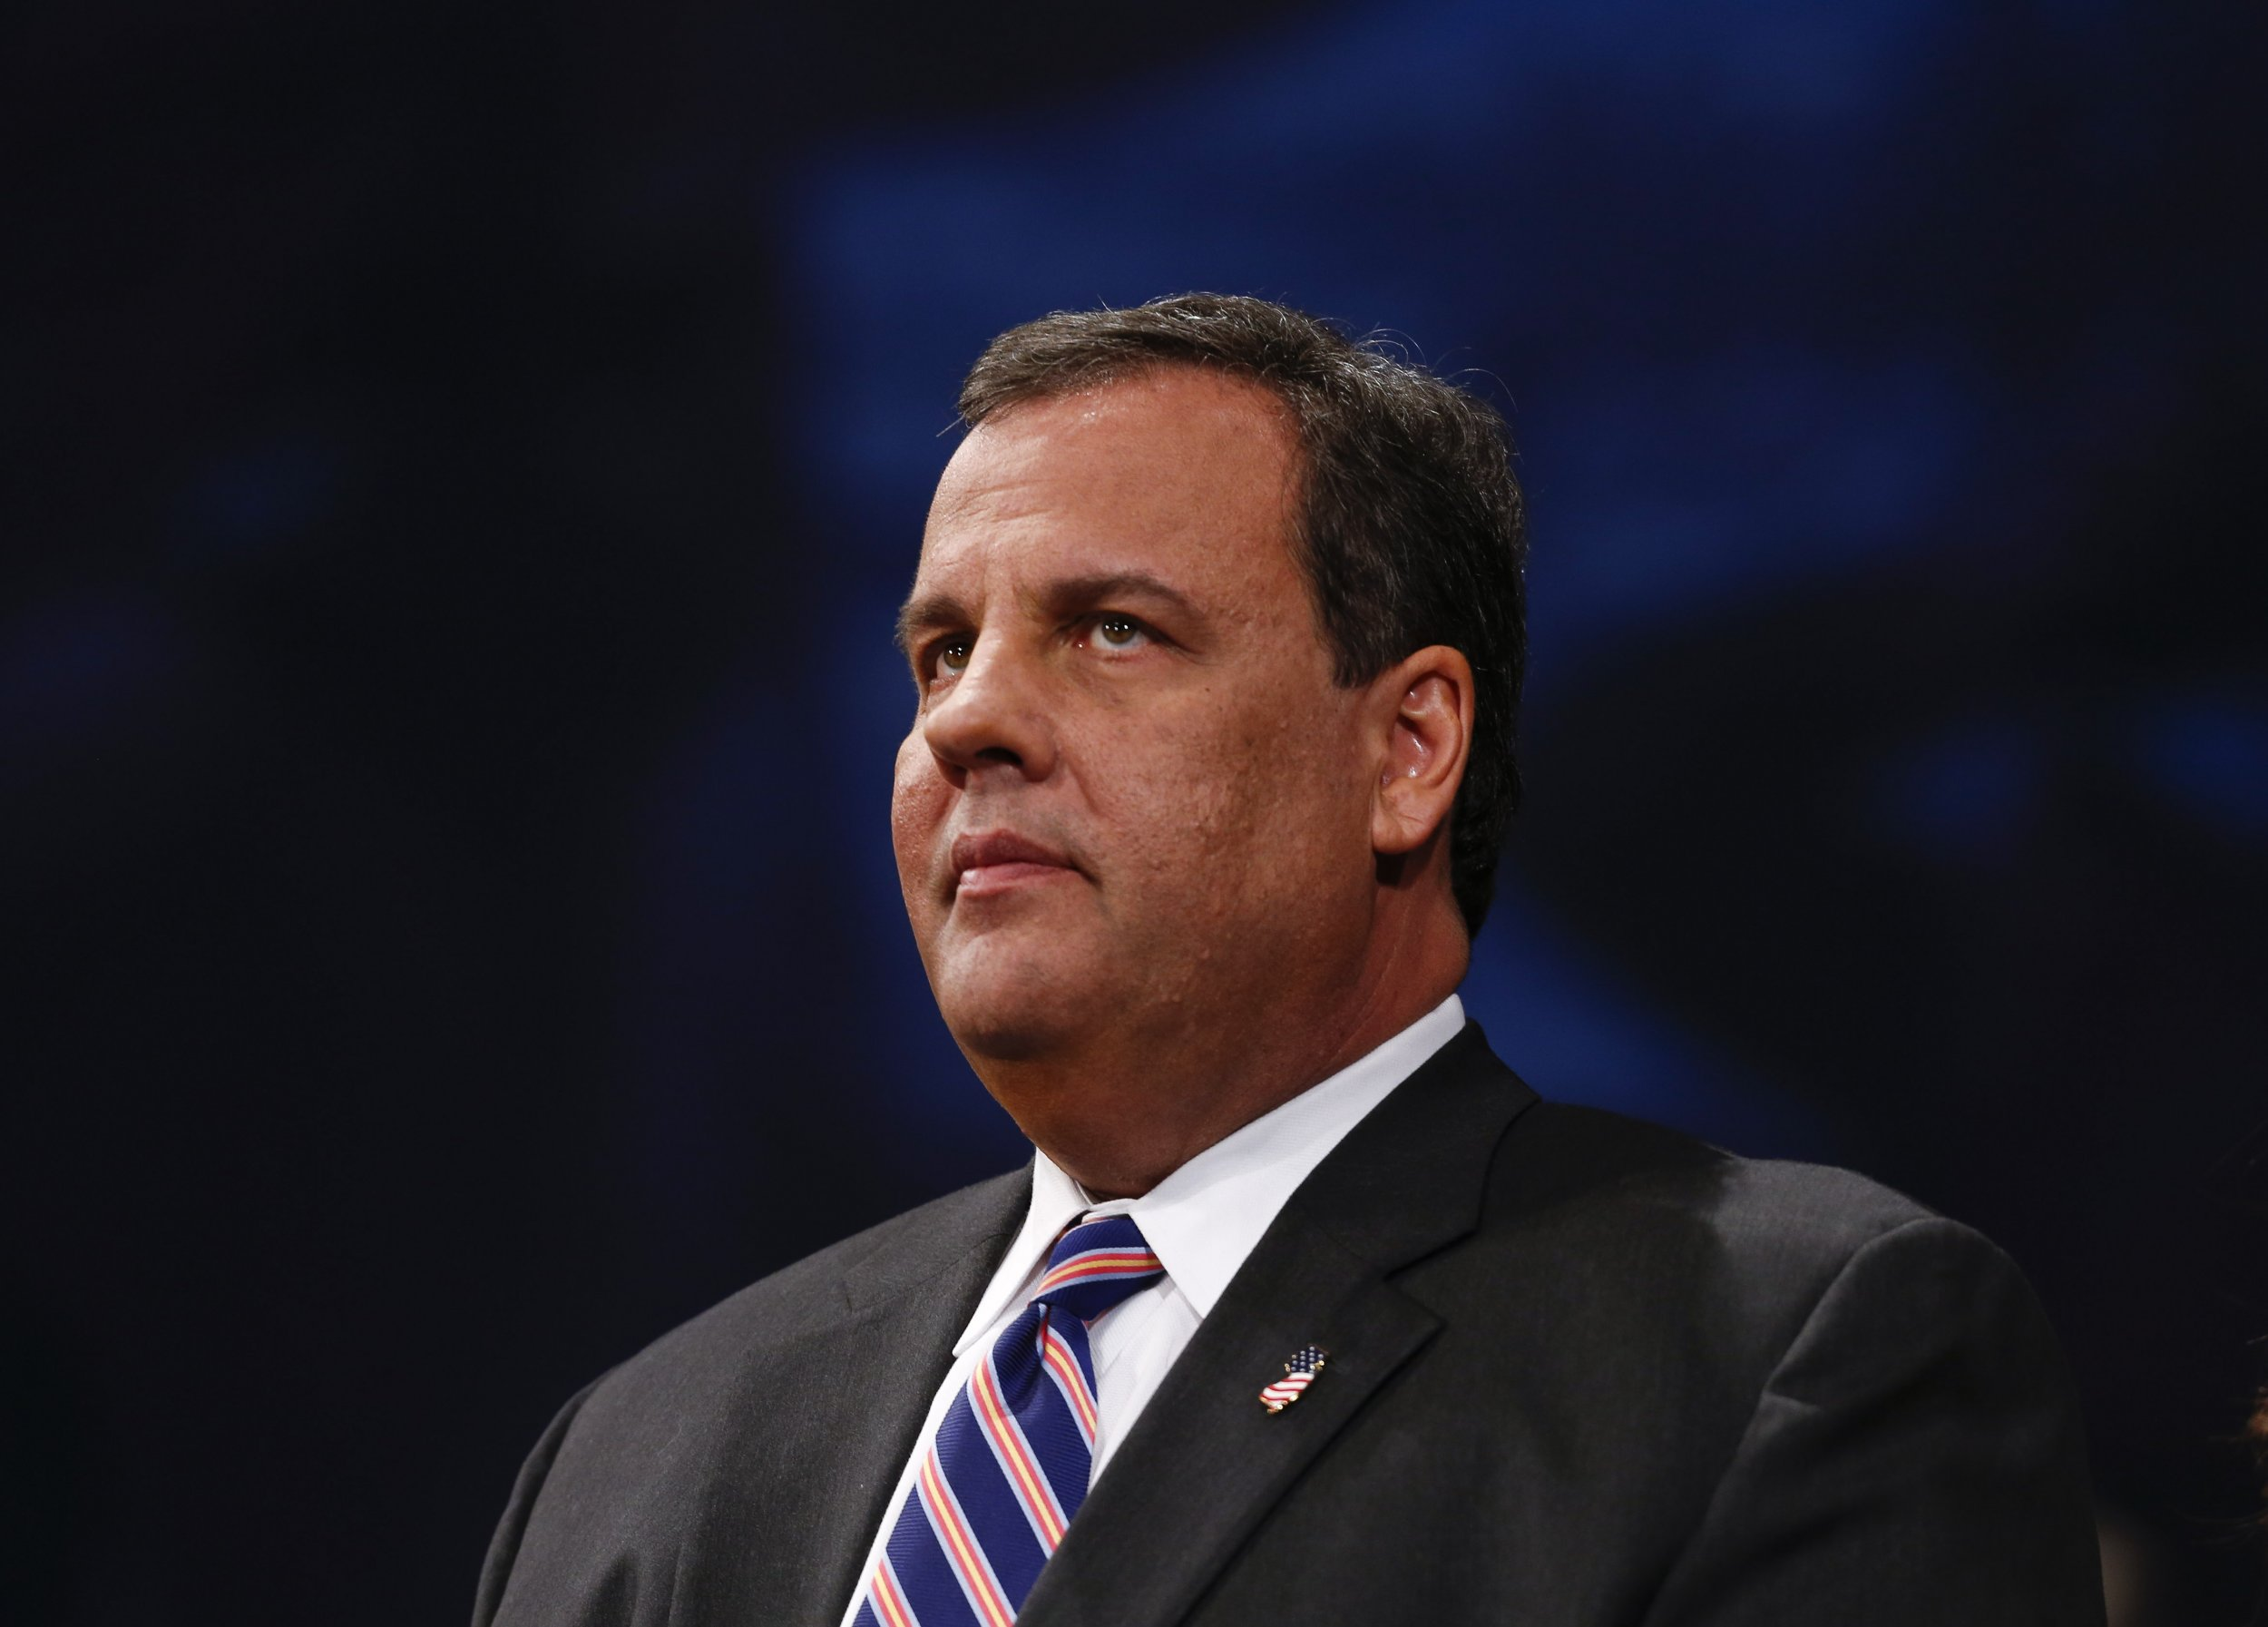 Chris Christie's players in Bridgegate